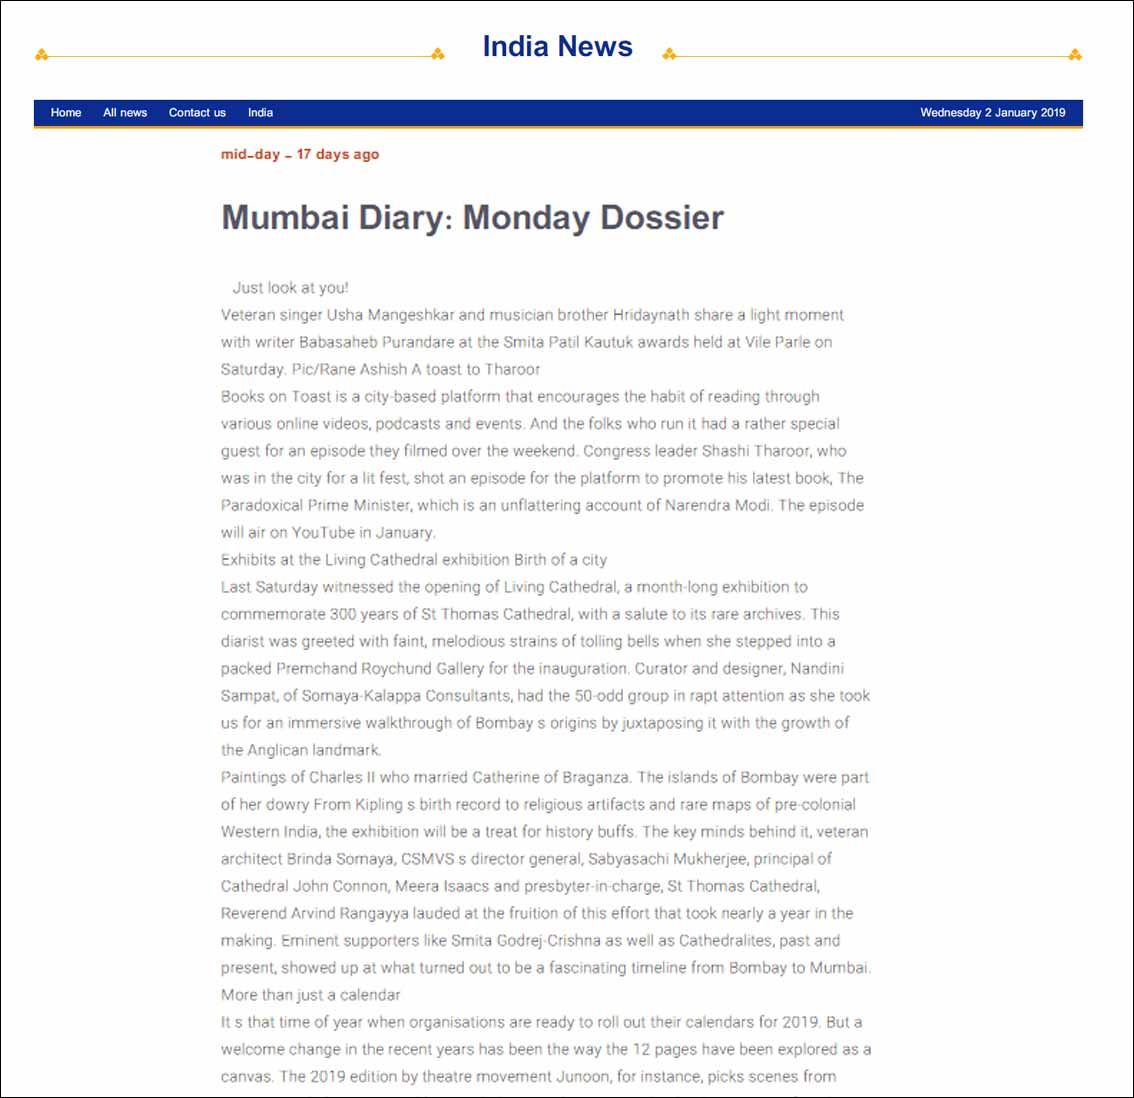 Mumbai Diary: Monday Dossier, India News - January 2019